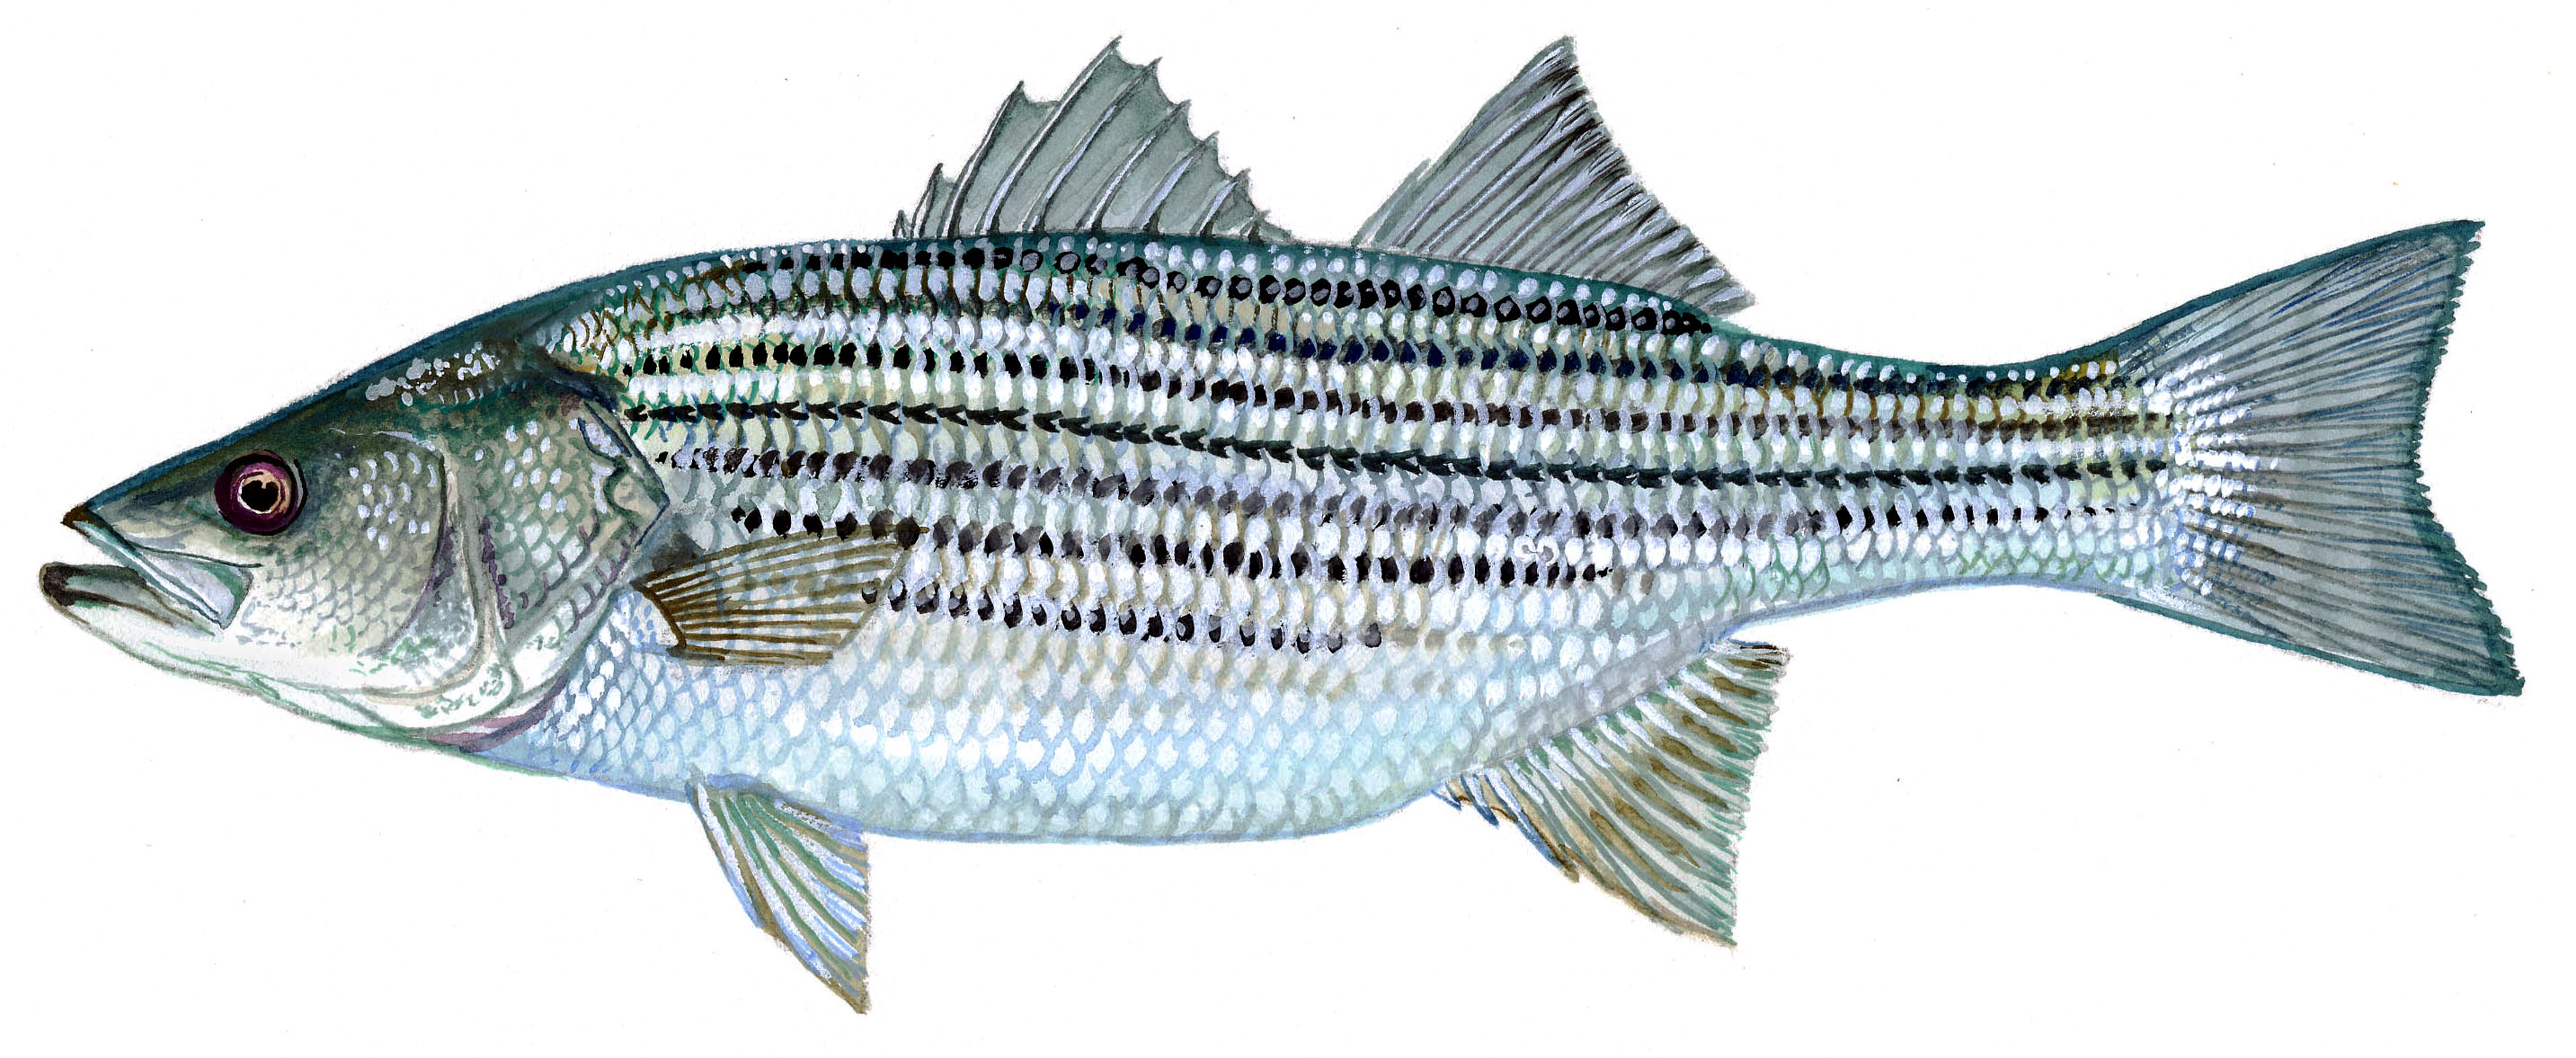 The striped bass, or rockfish, has been a species of contention since it was banned in federal waters in 1985.